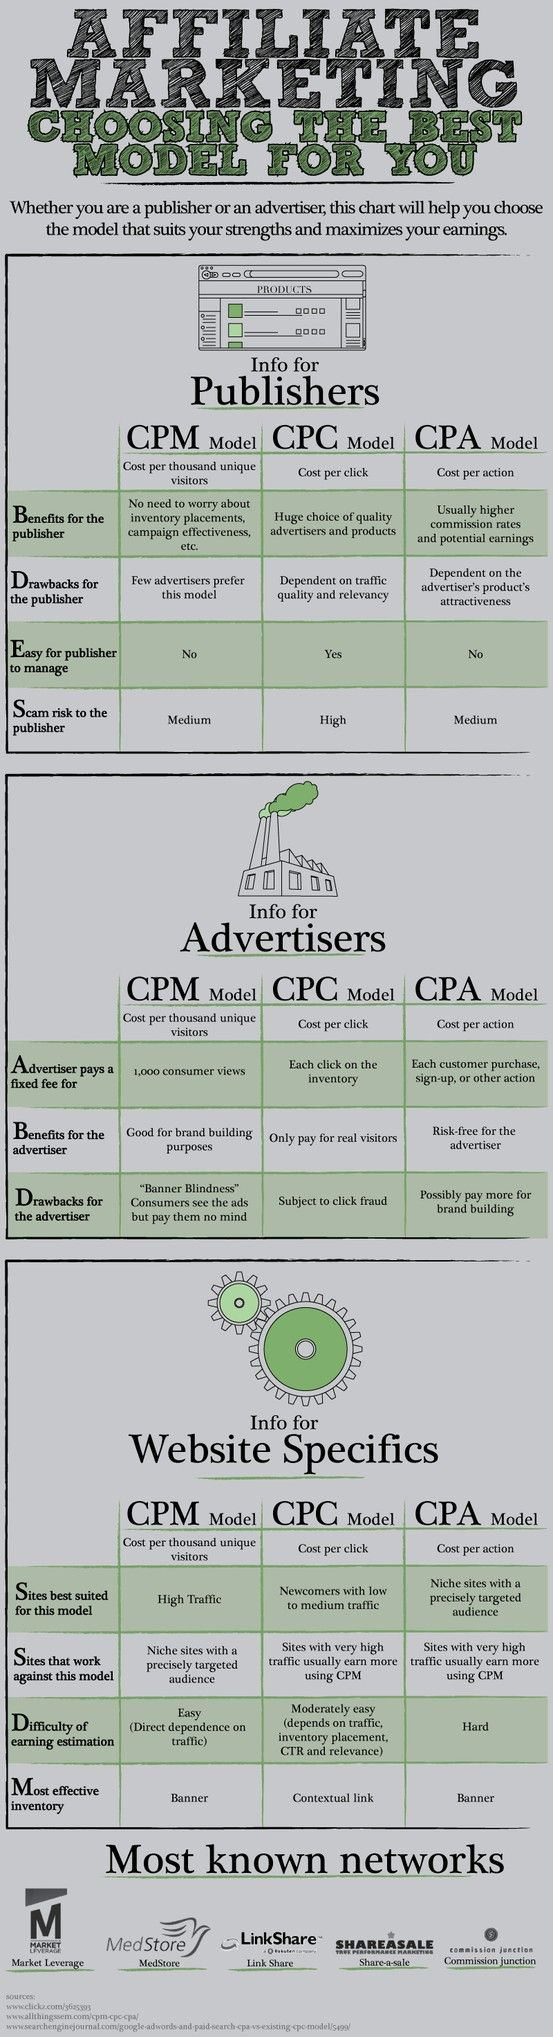 Affiliate Marketing Choosing the Best Model for You